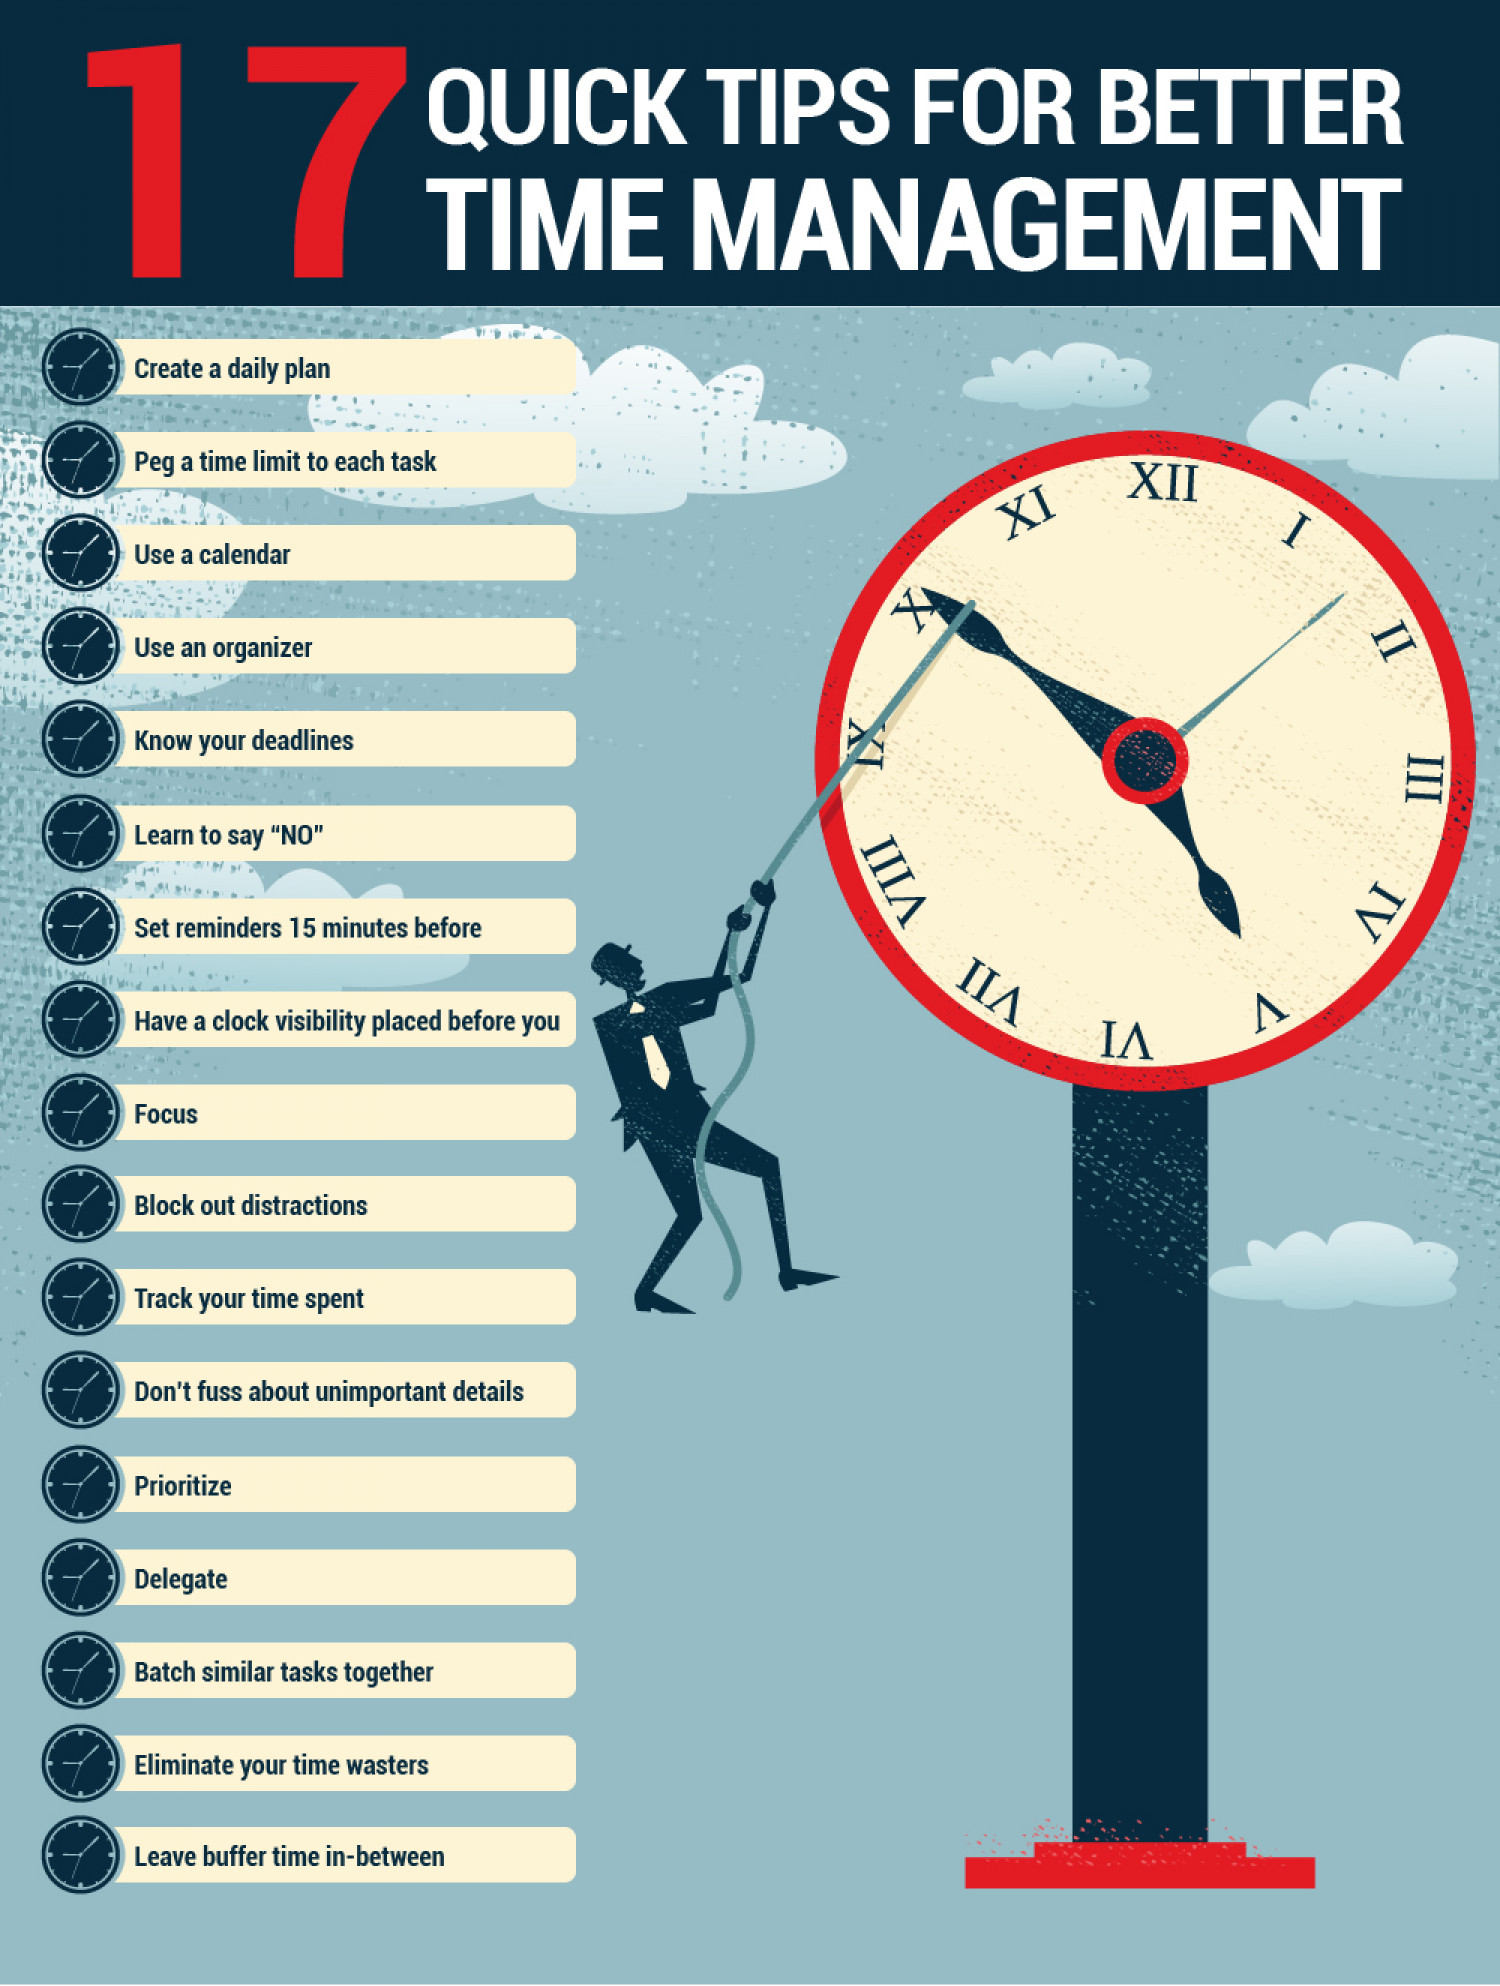 17 Quick Tips For Better Time Management